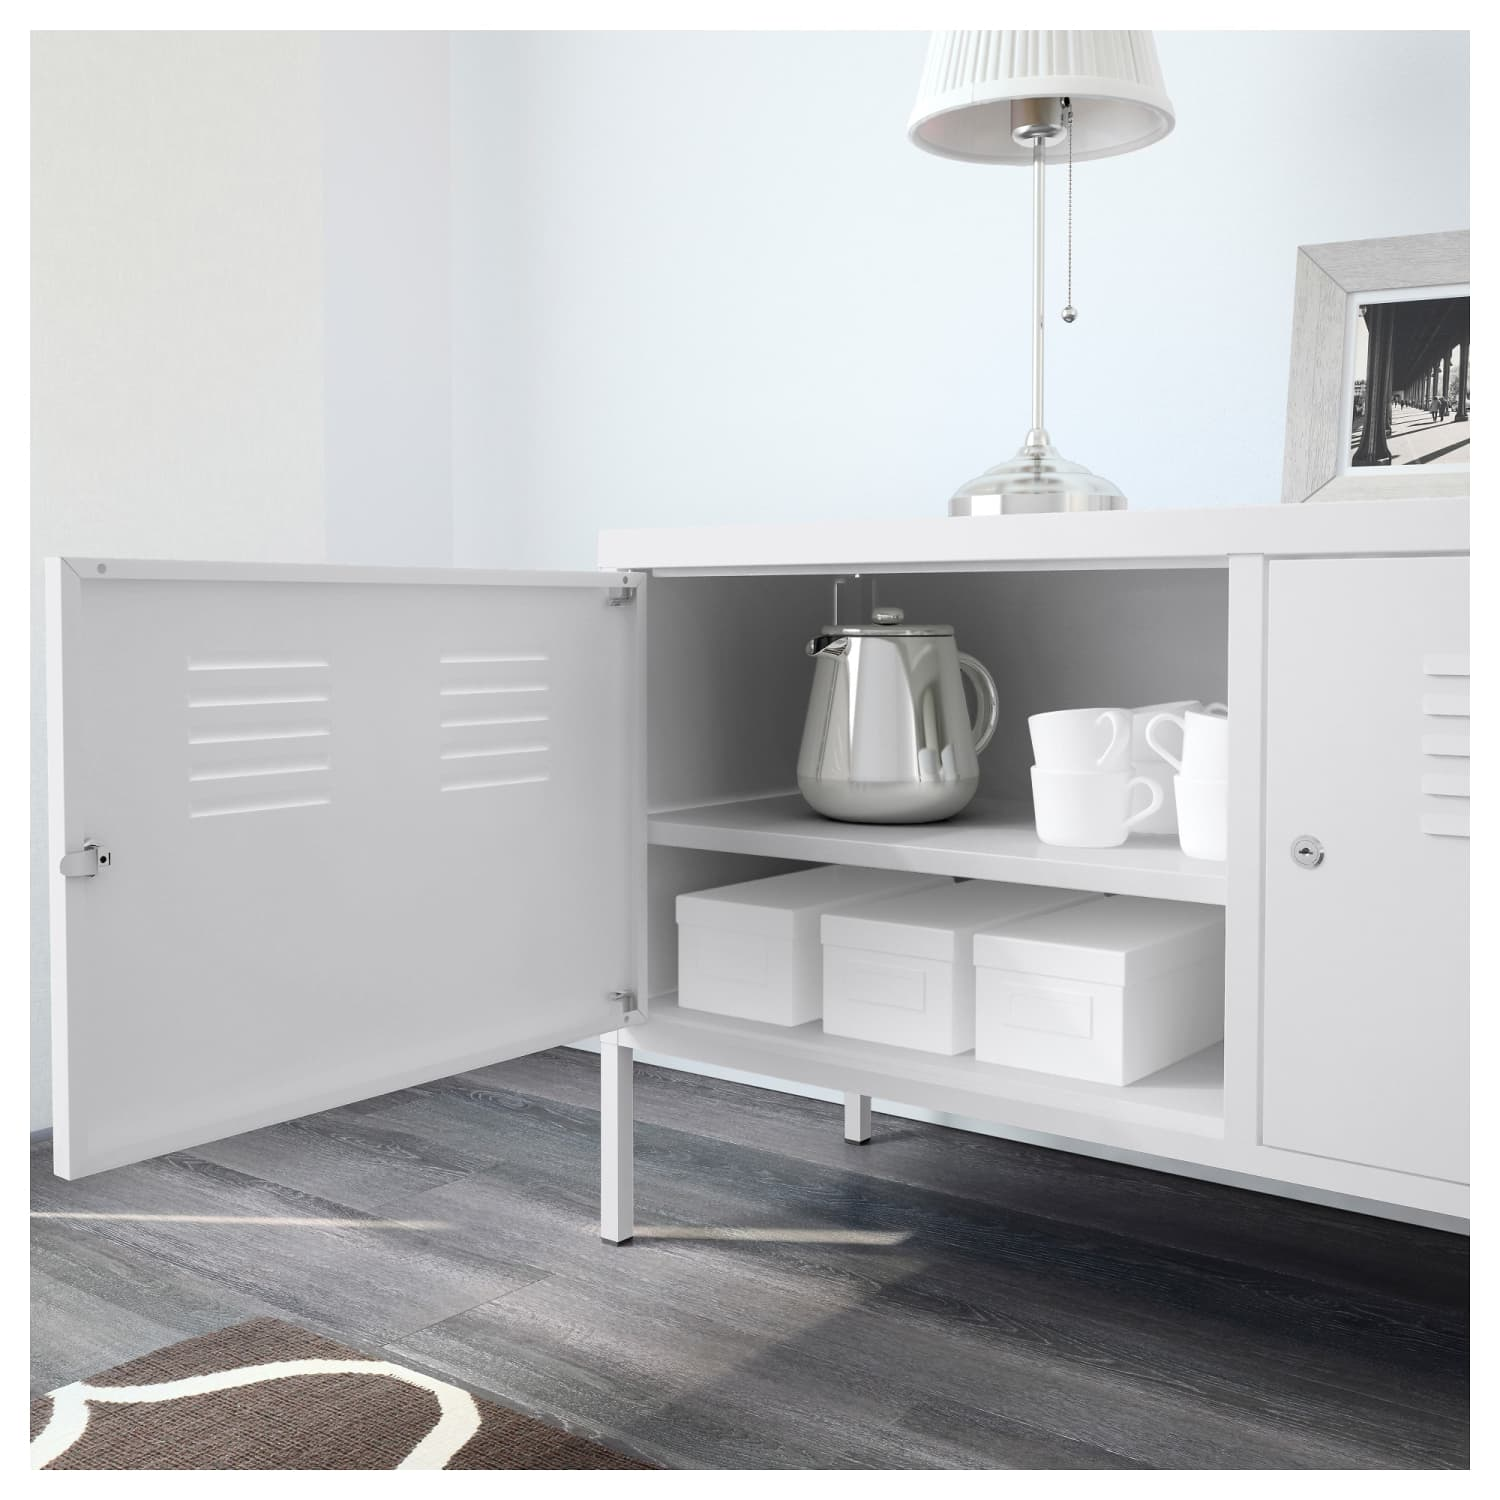 Ikea Ps Cabinet Ideas For How To Use It Apartment Therapy